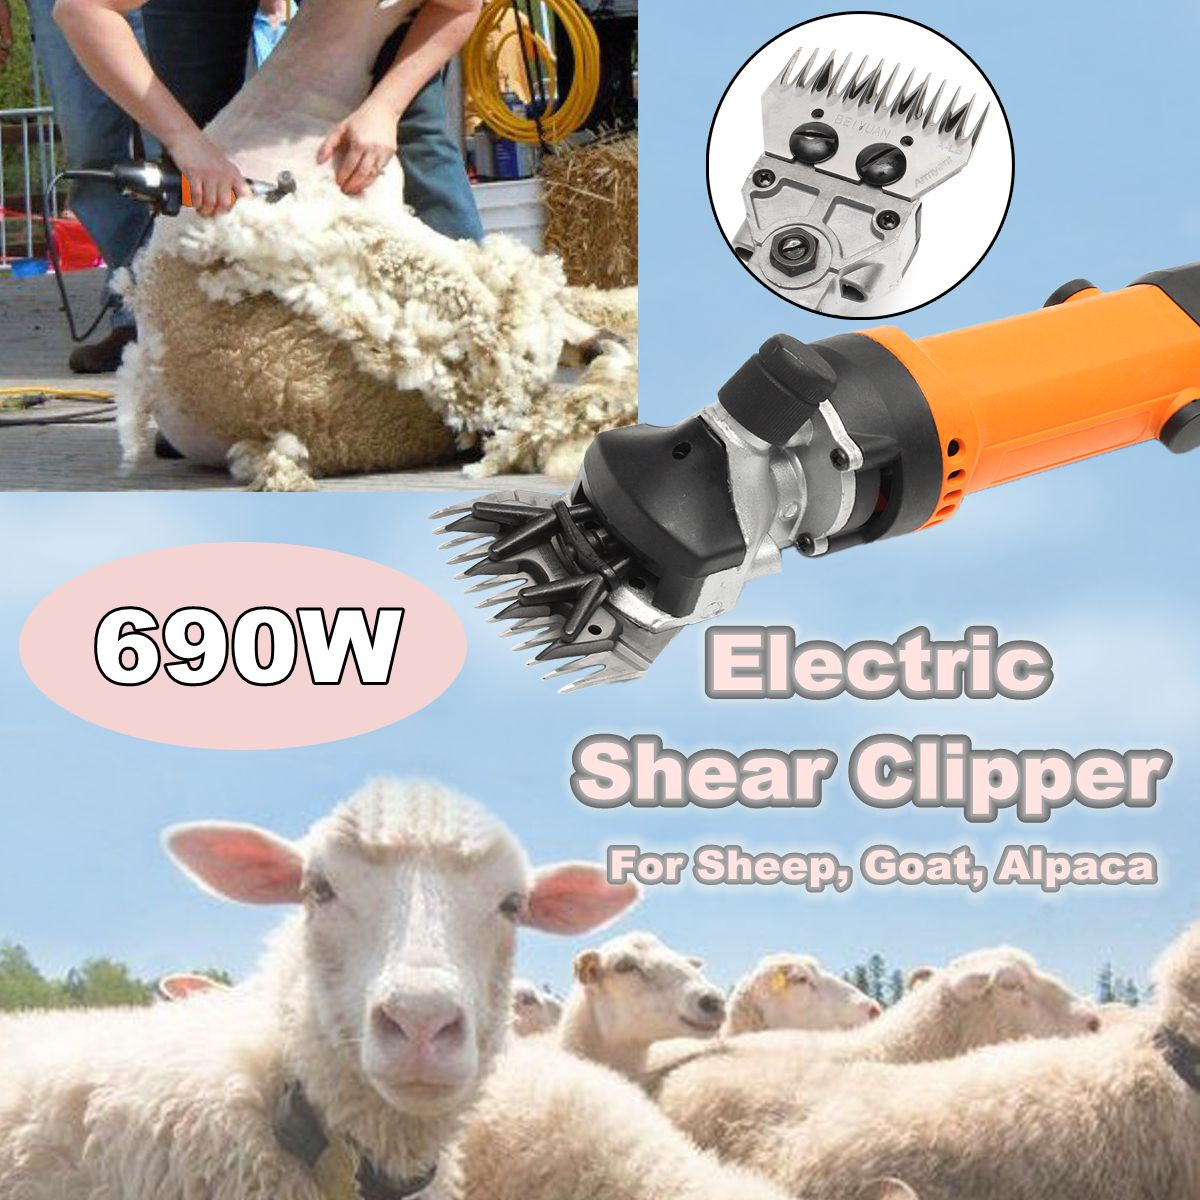 690W Electric Shearing Supplies Clipper 13 teeth Blade Scissors Shear Sheep Goats Alpaca Hair Trimmer Shears Machines Tool new 680w sheep wool clipper electric sheep goats shearing clipper shears 1 set 13 straight tooth blade comb